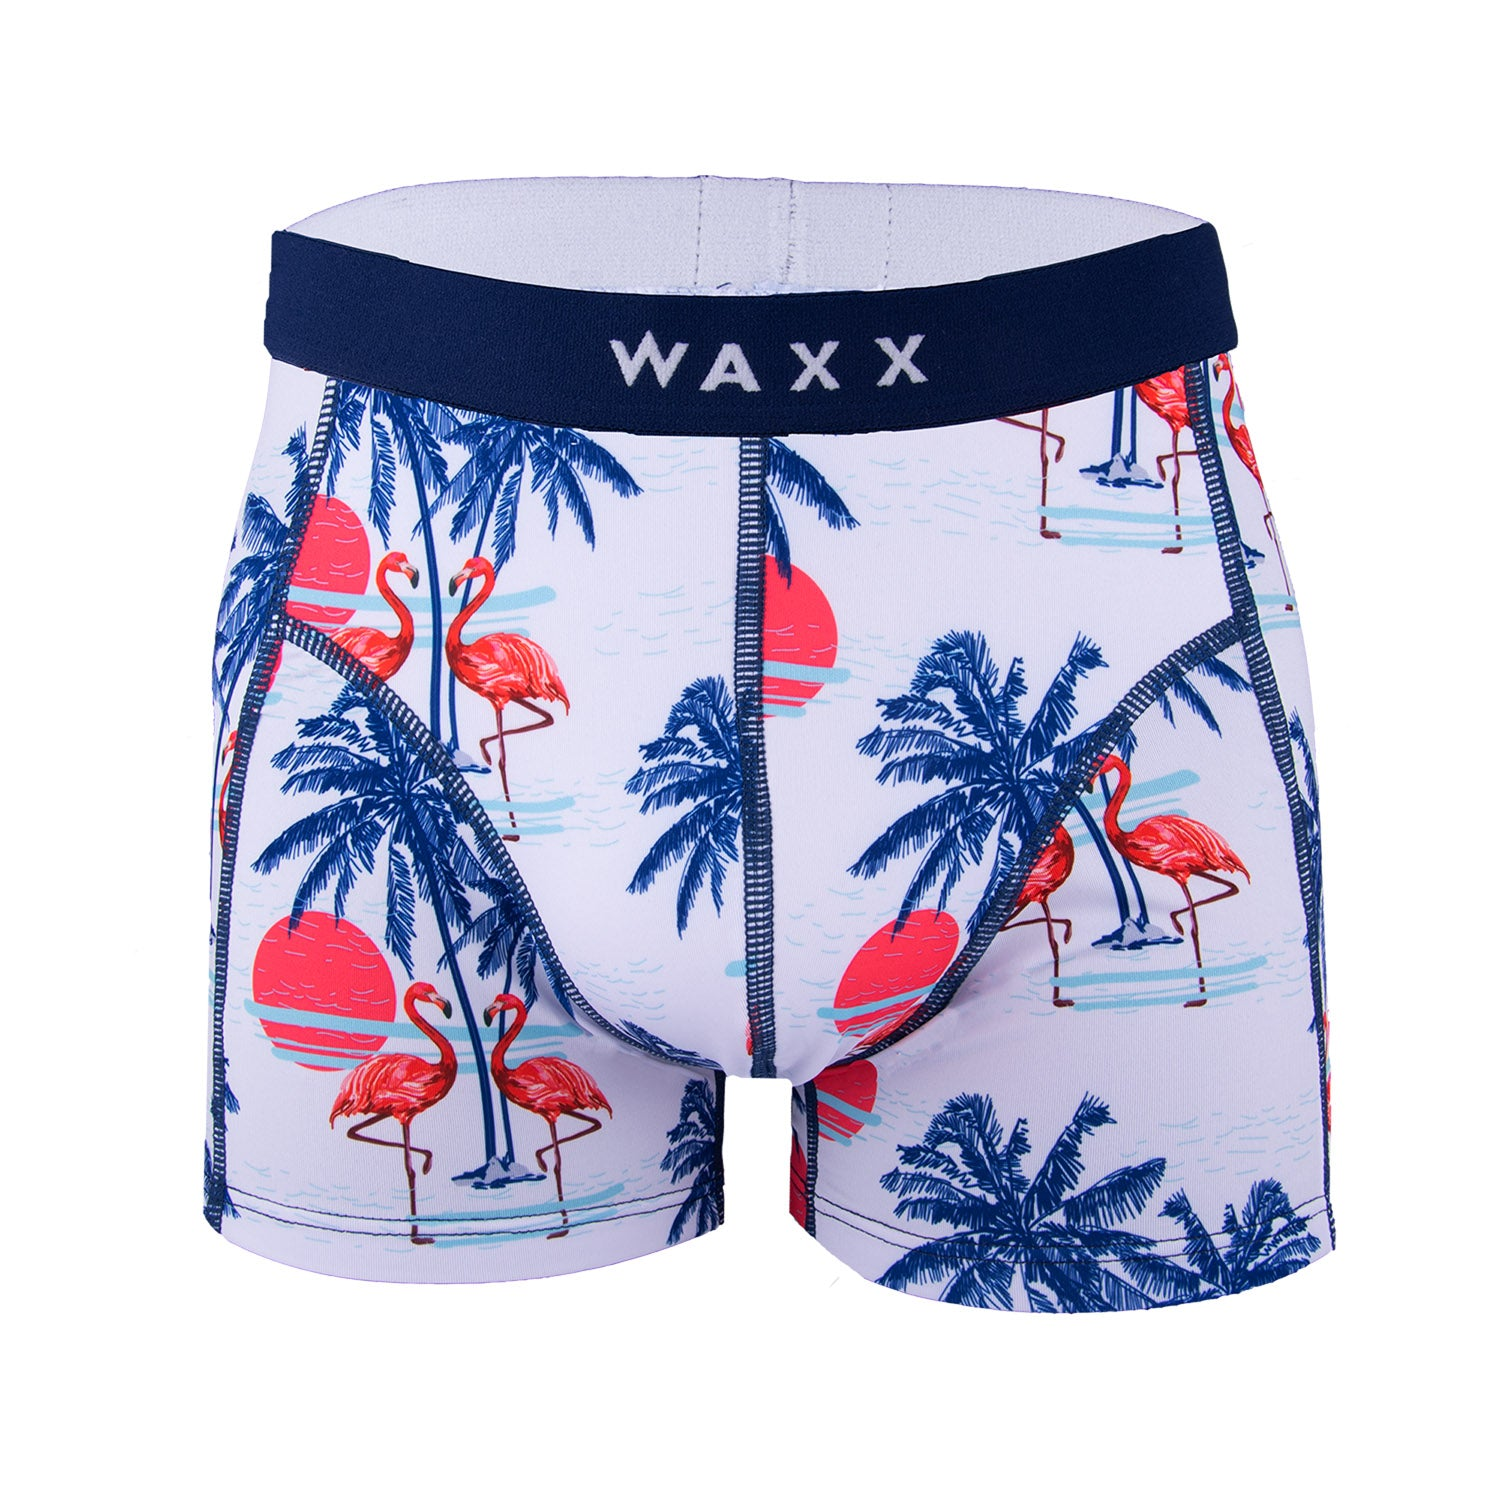 Waxx Men's Trunk Boxer Short Tropico